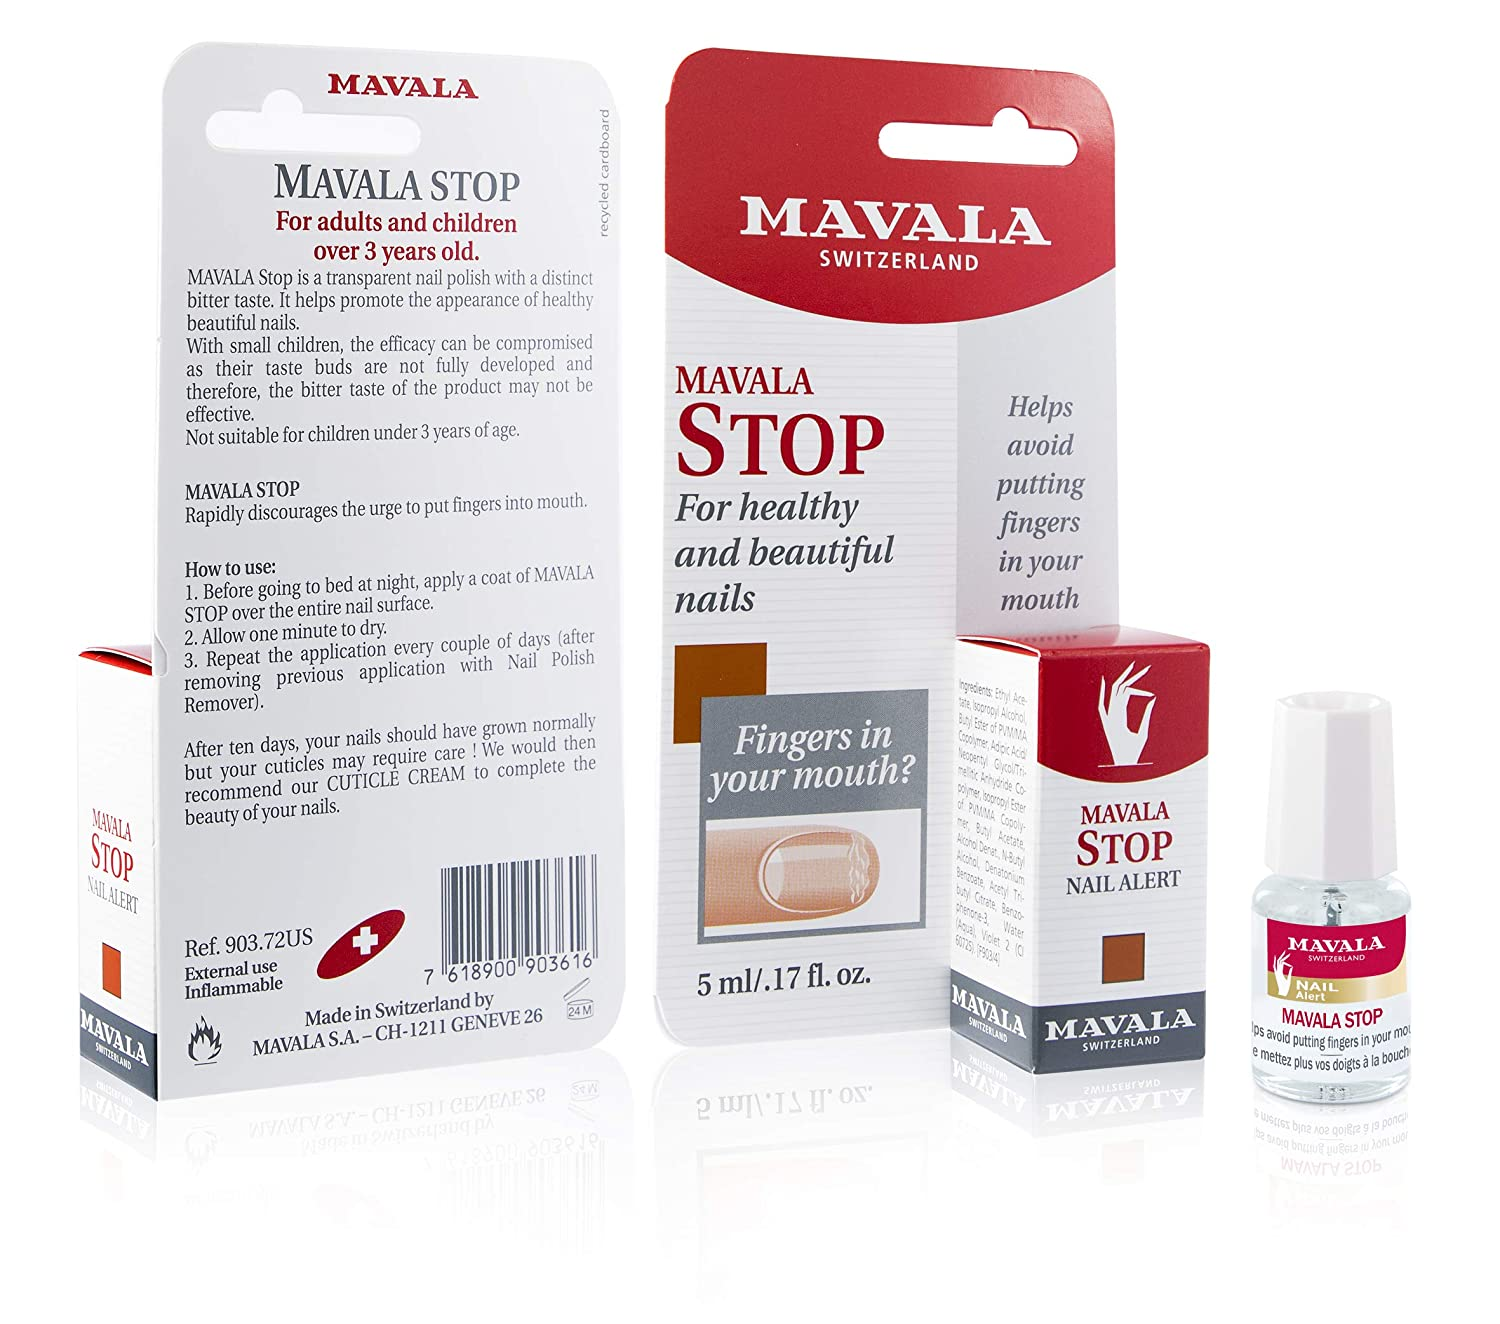 Mavala Stop Deterrent Nail Polish Treatment | Nail Care to Help Stop Putting Fingers In Your Mouth | For Ages 3+ | 0.17 oz : Nail Repair Products : Beauty